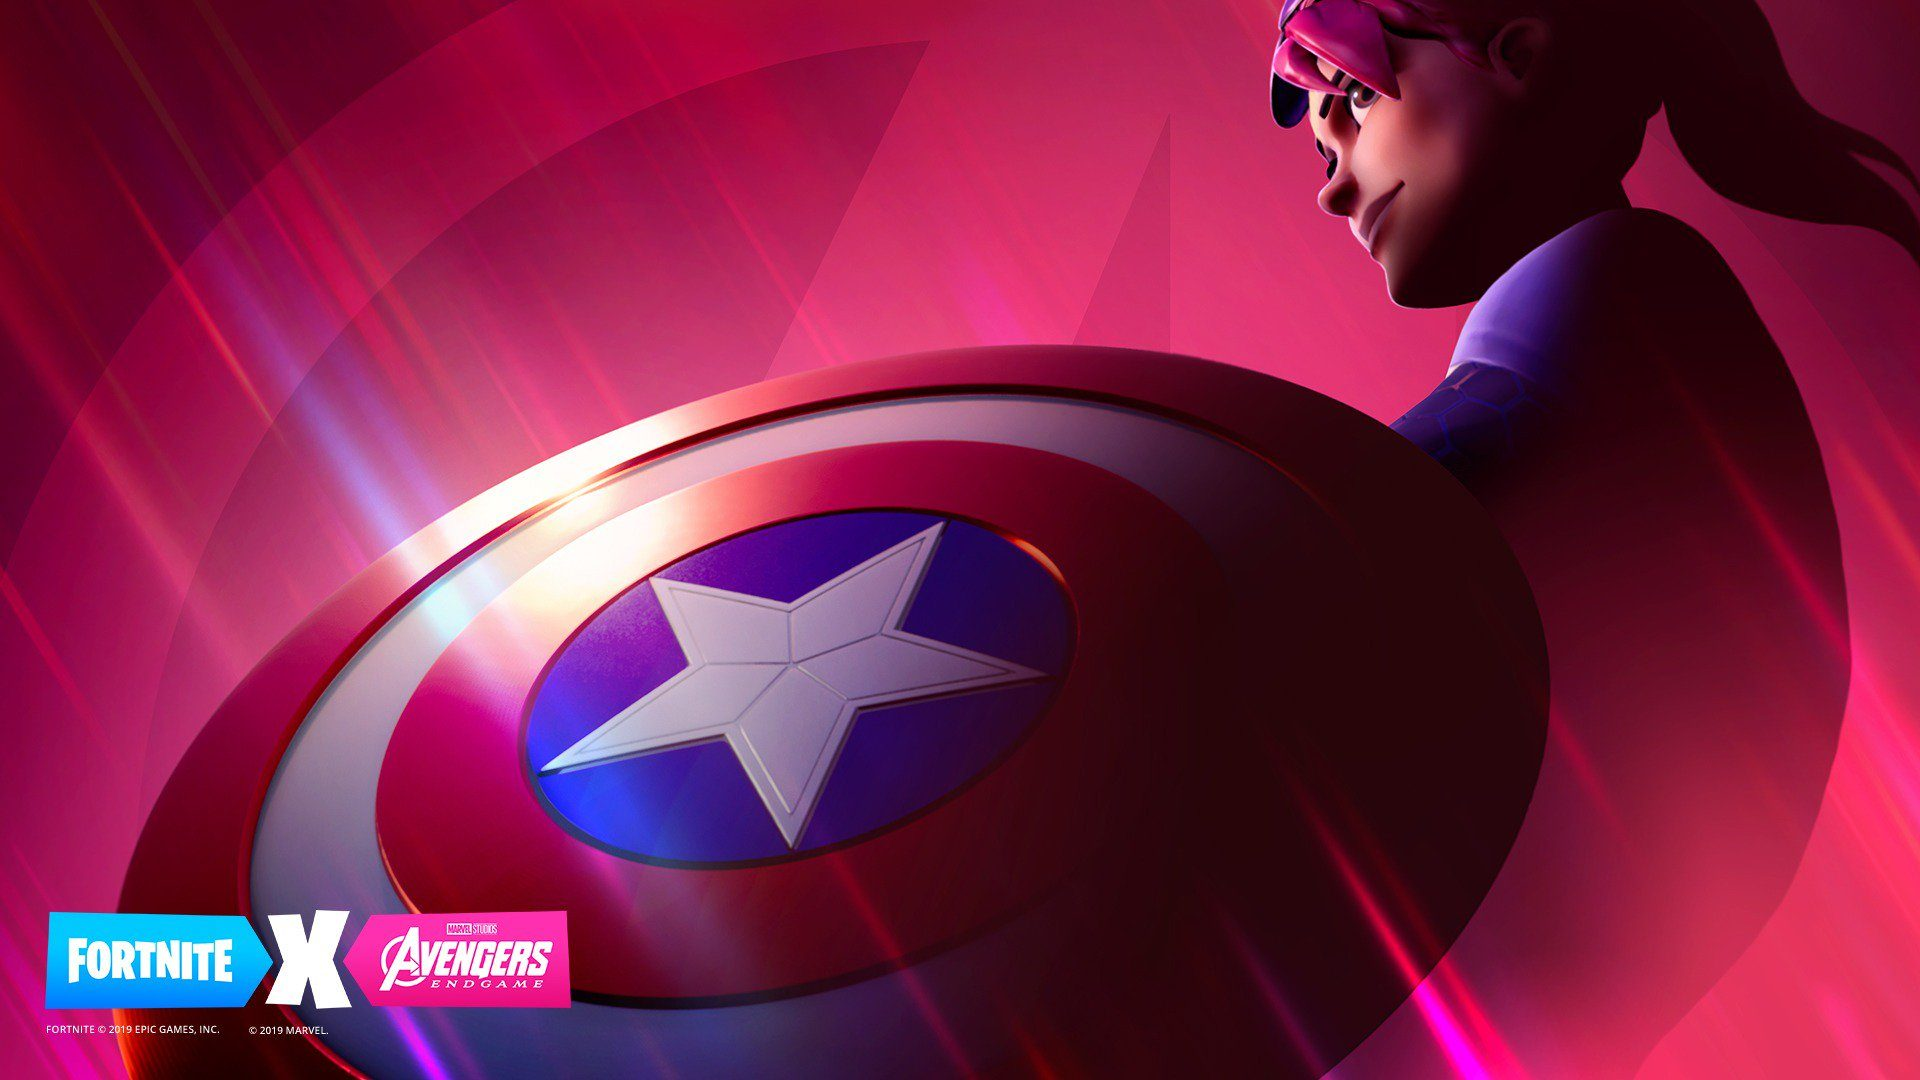 Another Fortnite and Avengers Crossover Appears to be on the Way